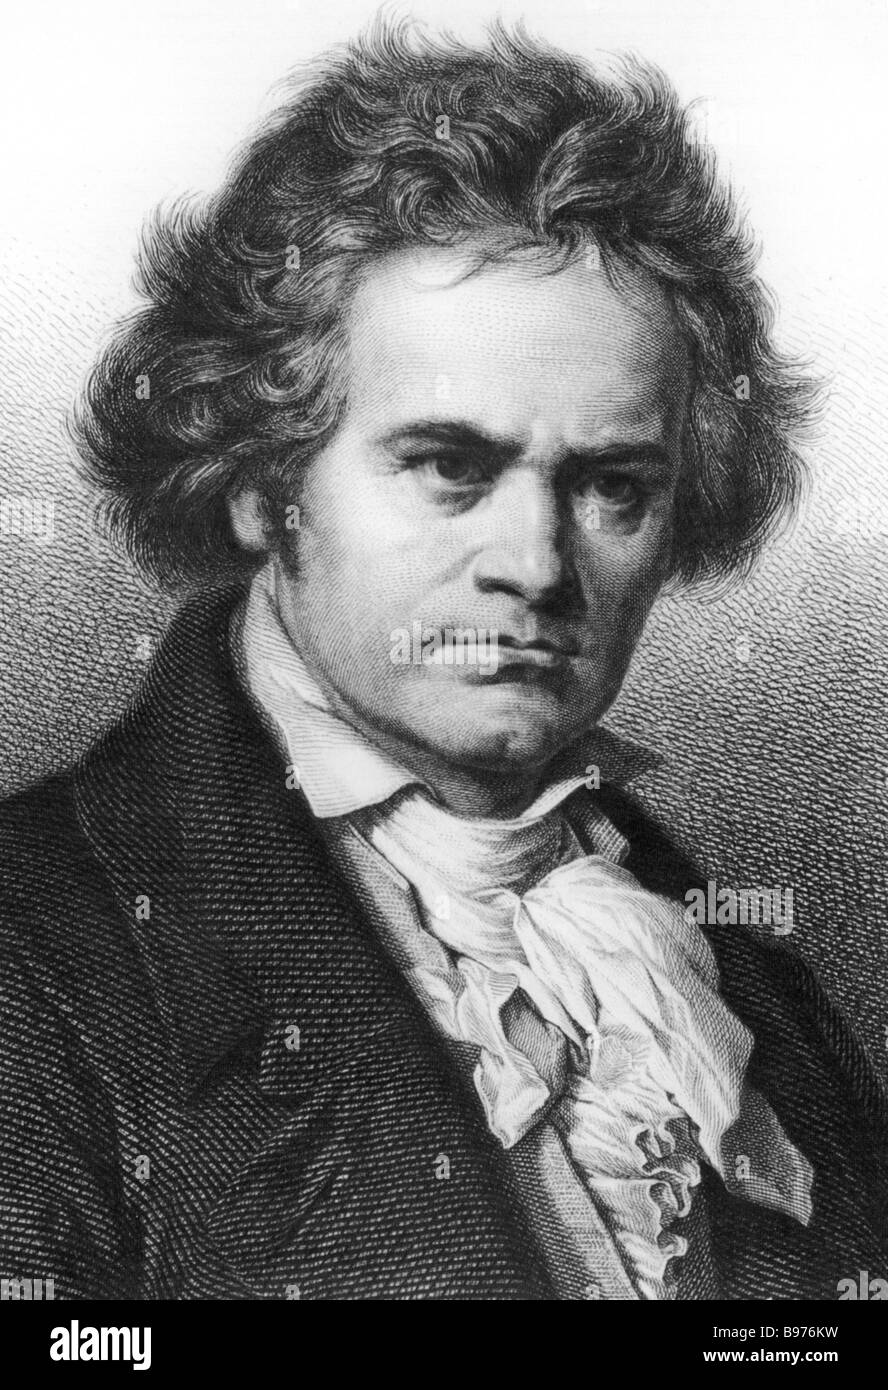 LUDWIG VAN BEETHOVEN German composer 1770 to 1827 Stock Photo